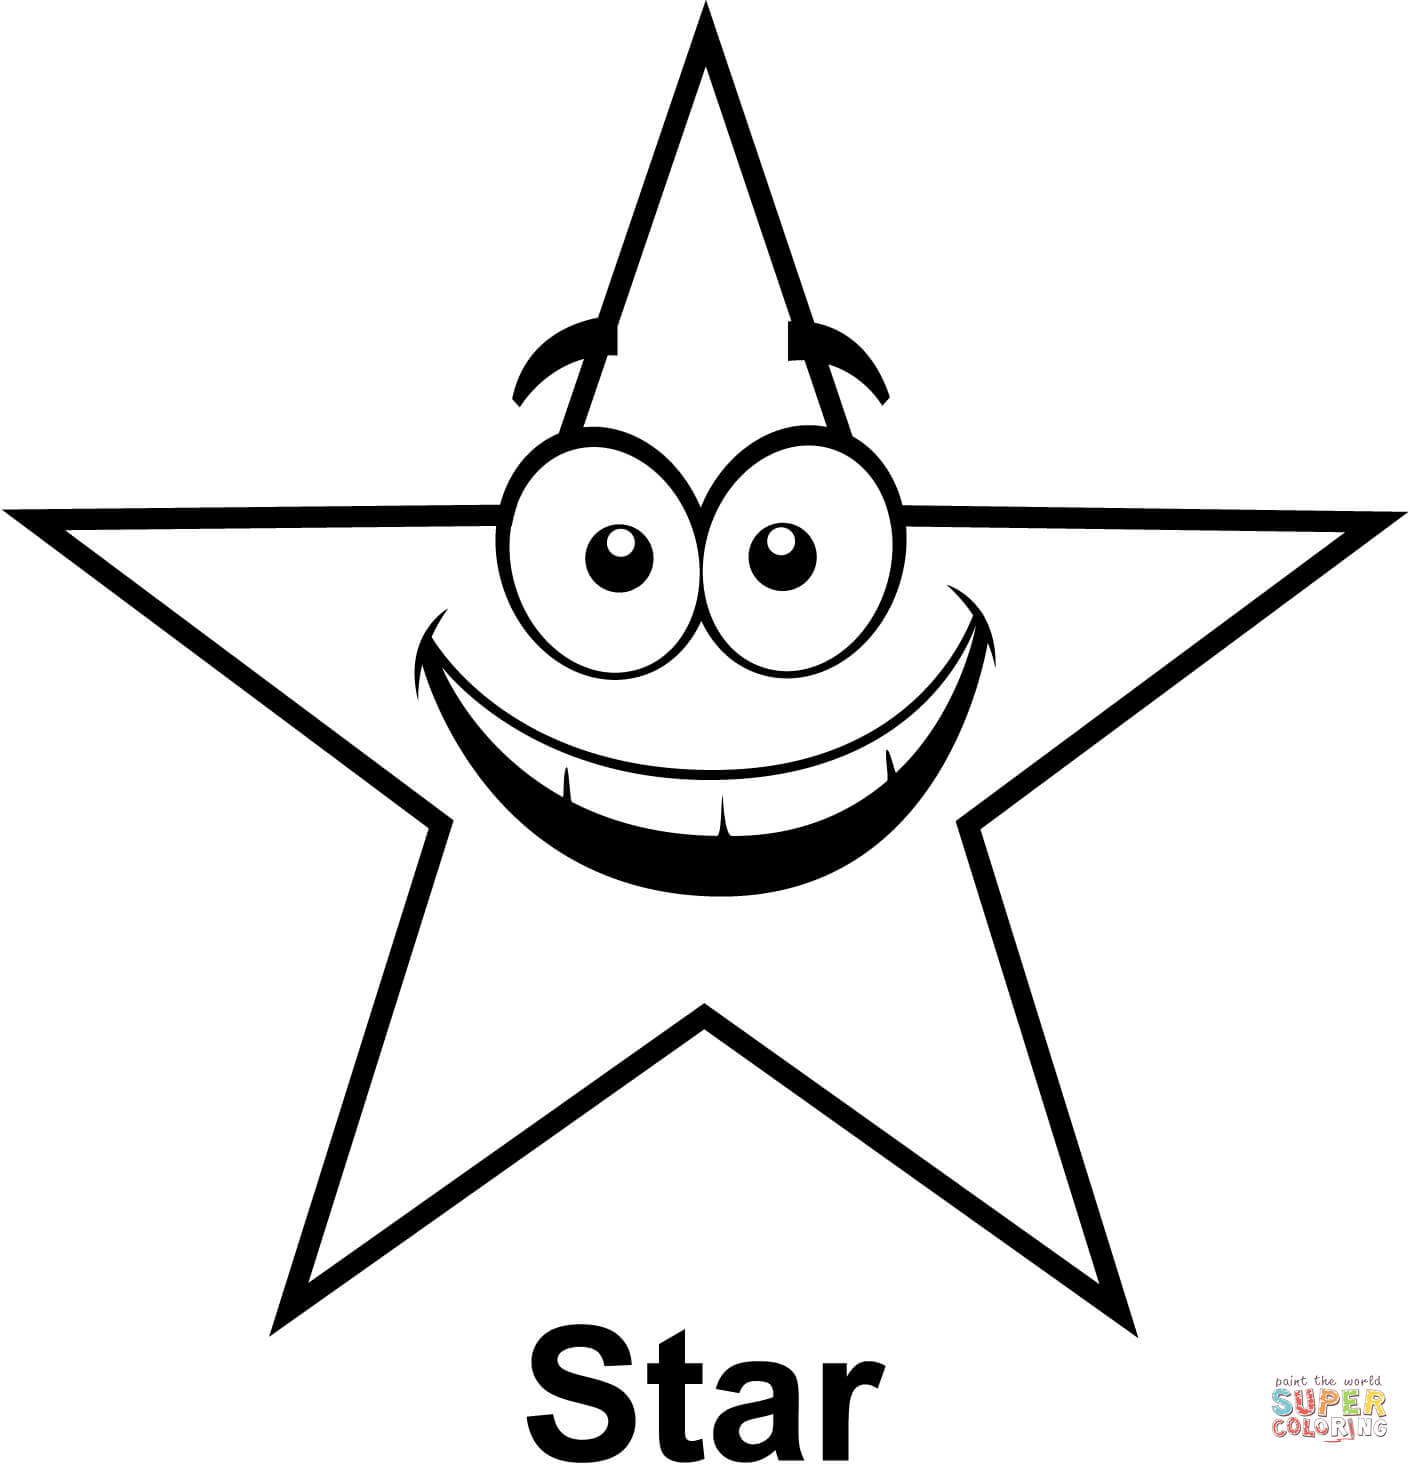 Star Coloring Download Star Coloring For Free